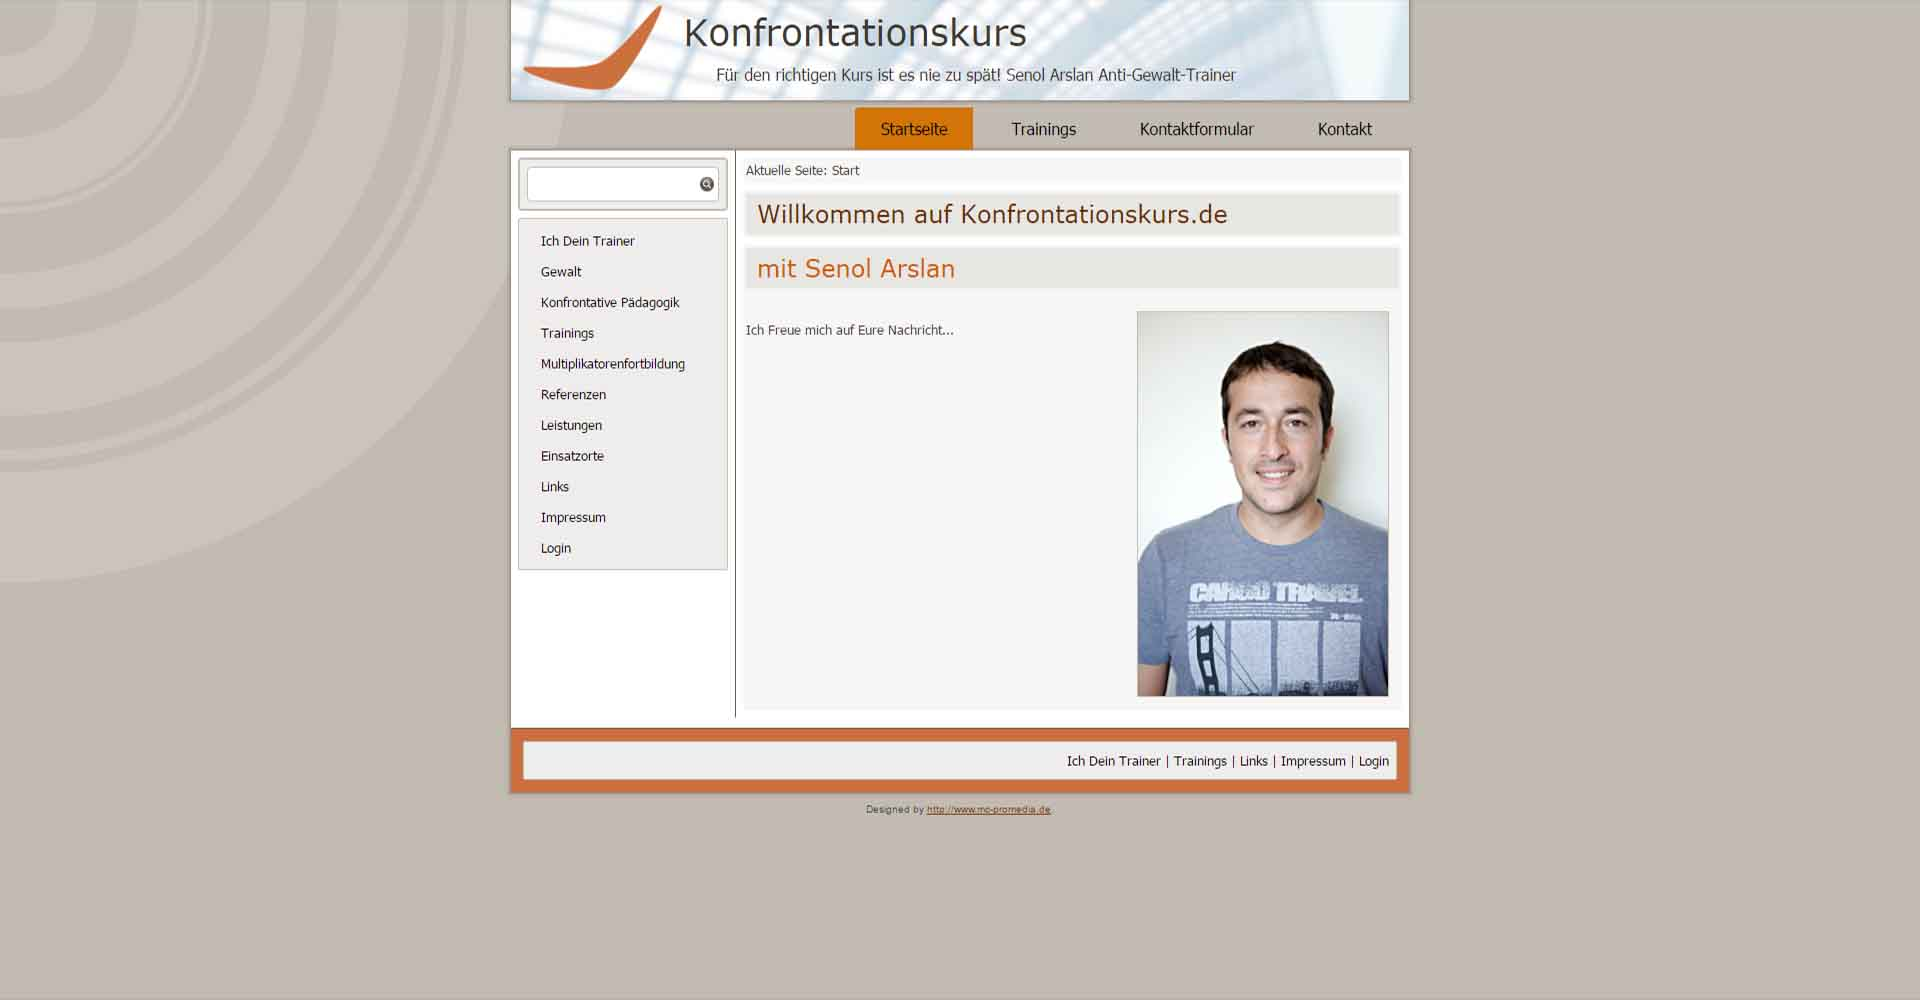 Konfrontationskurz